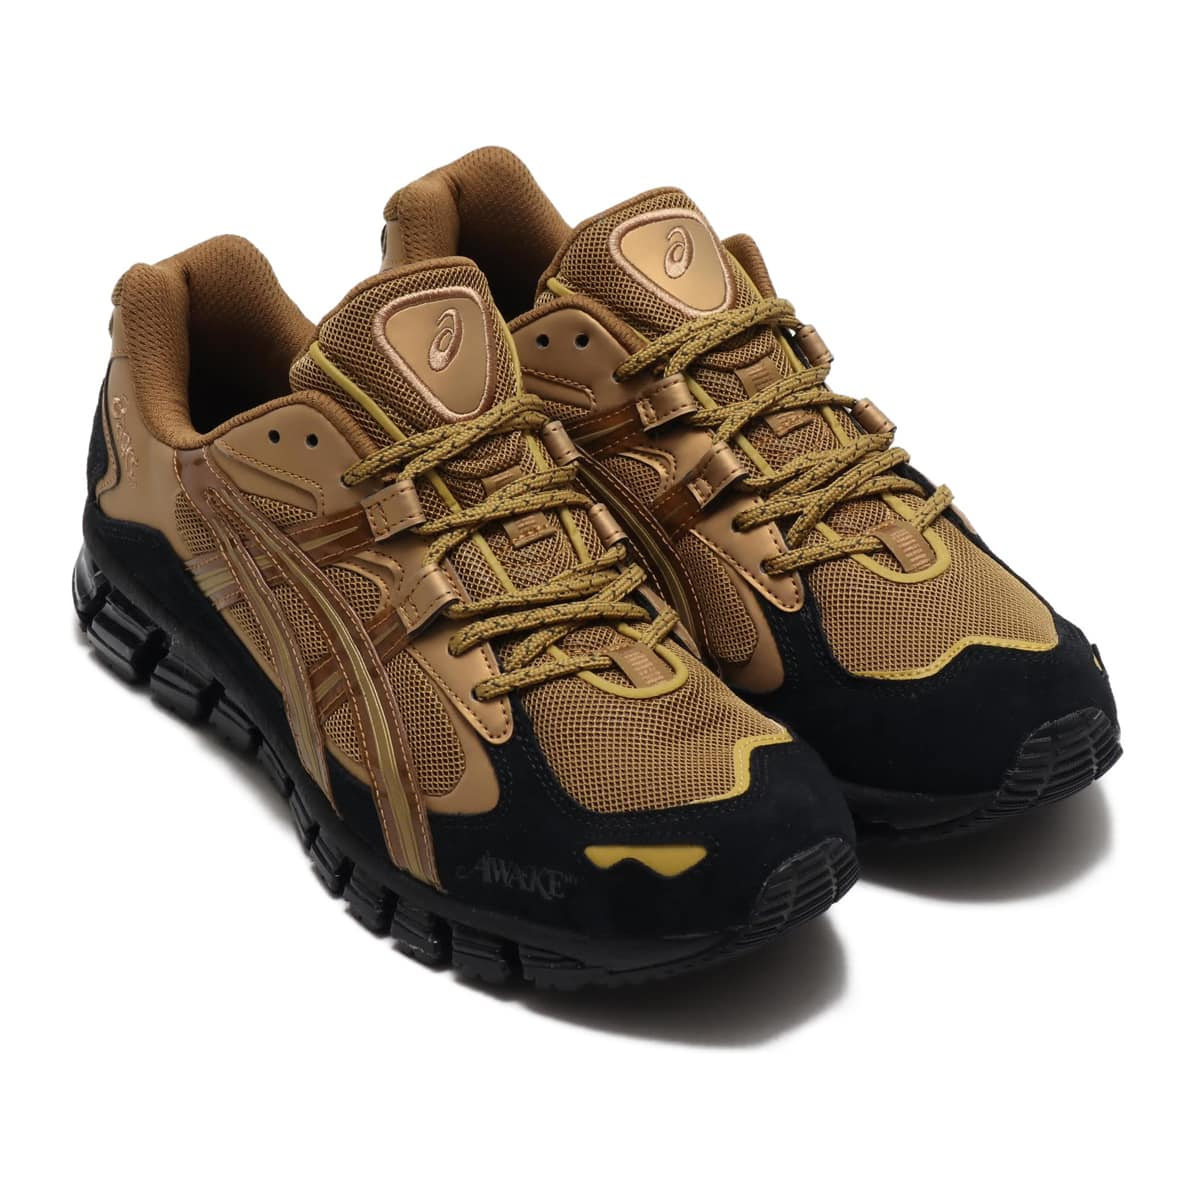 ASICSTIGER GEL-KAYANO 5 360 AWAKE NY GOLD 19AW-S_photo_large